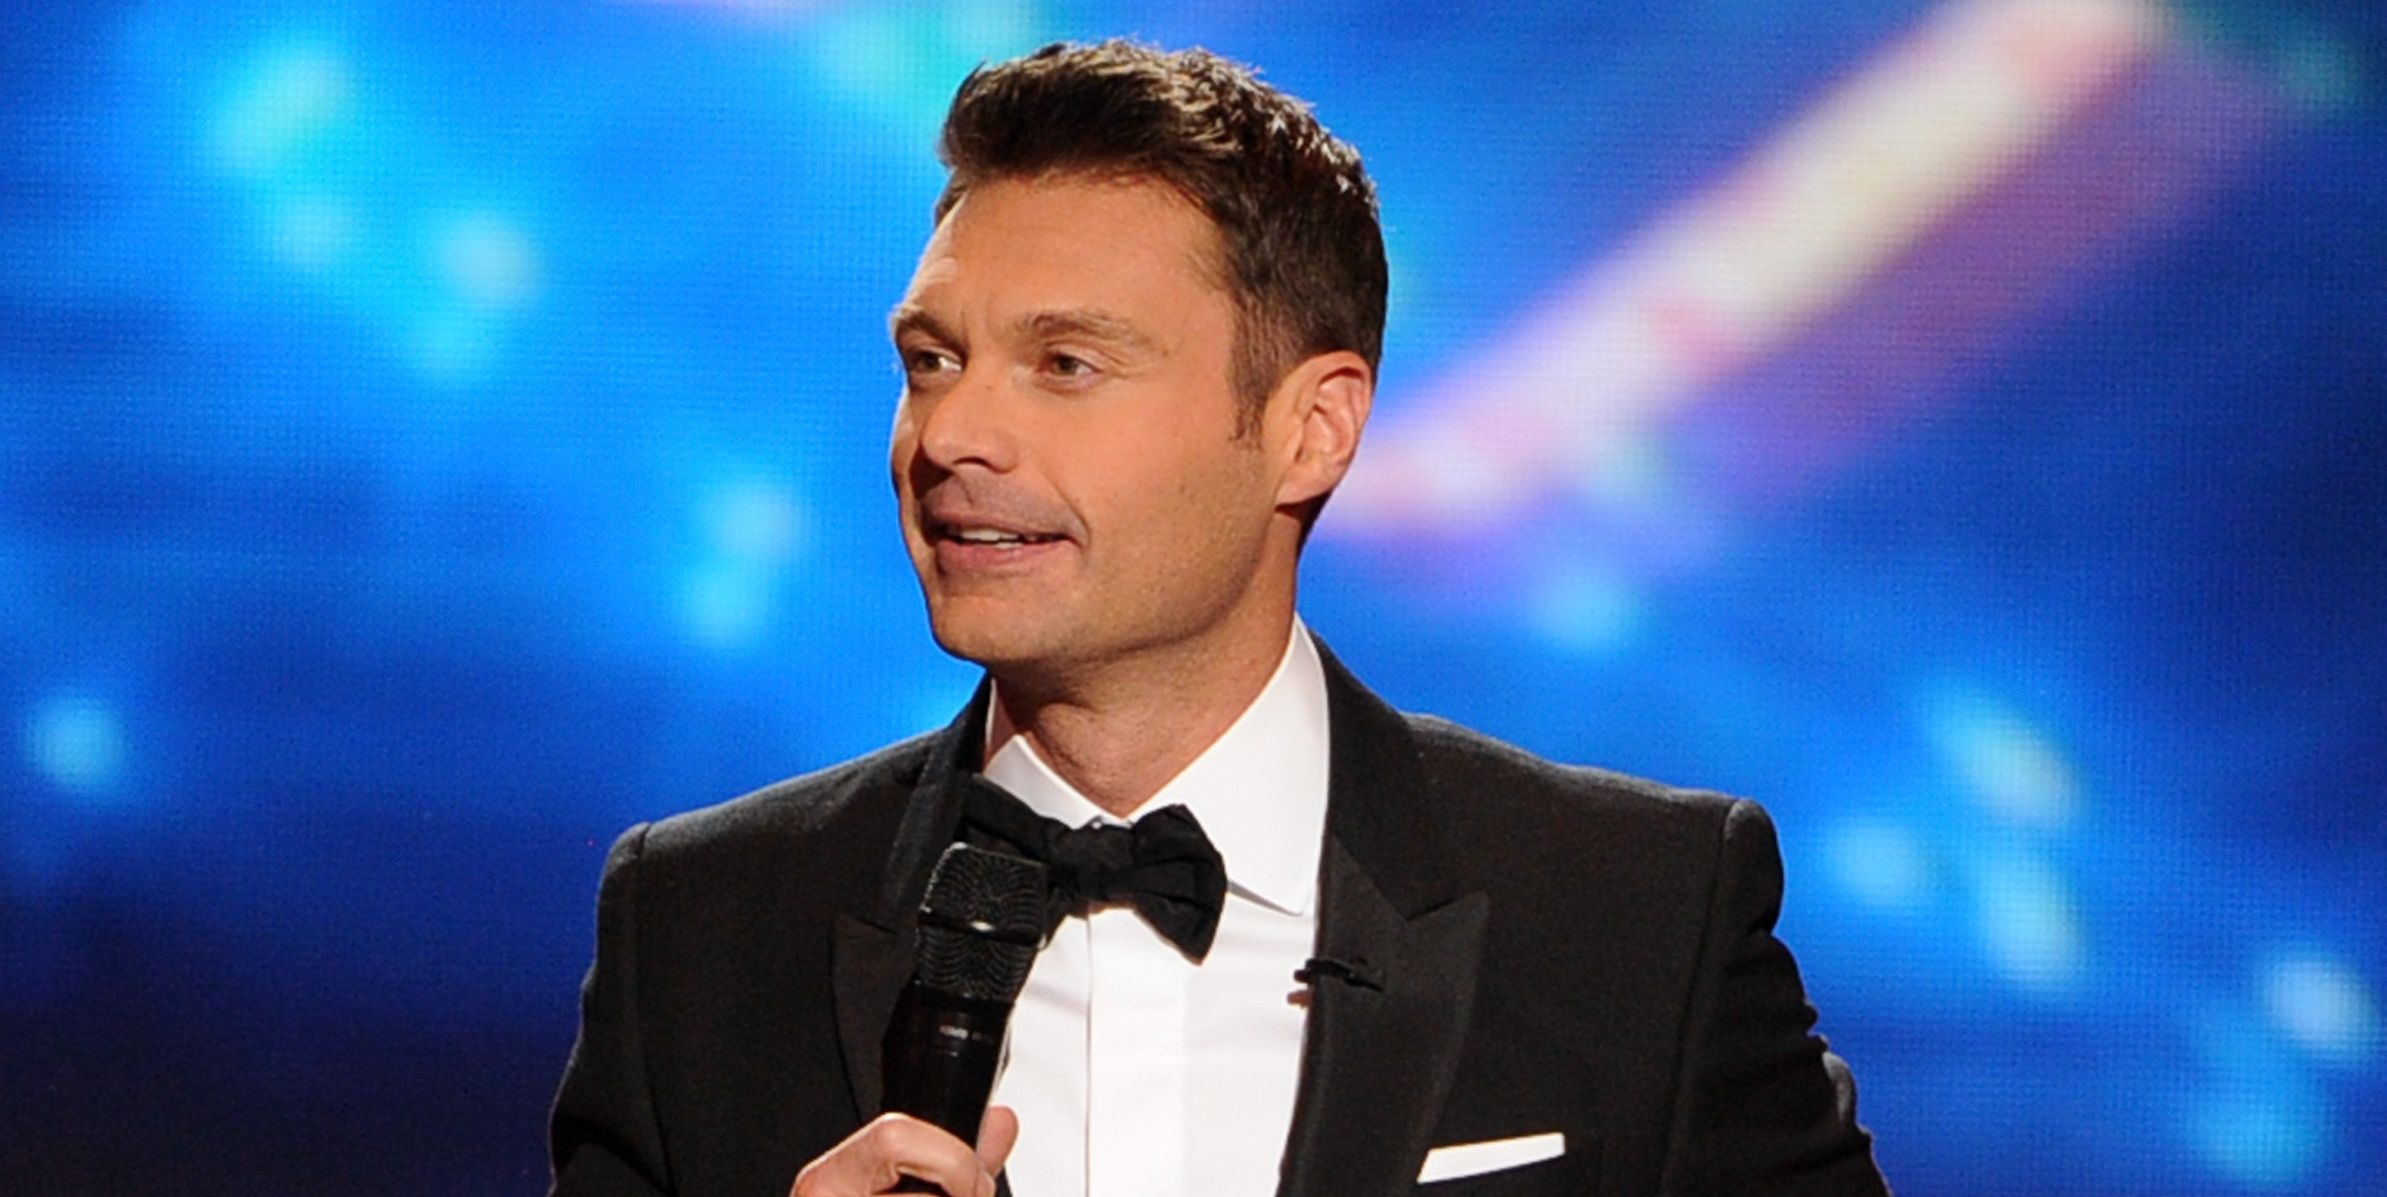 Twitter Is Absolutely Trashing Ryan Seacrest for His Grammy Awards Interviews